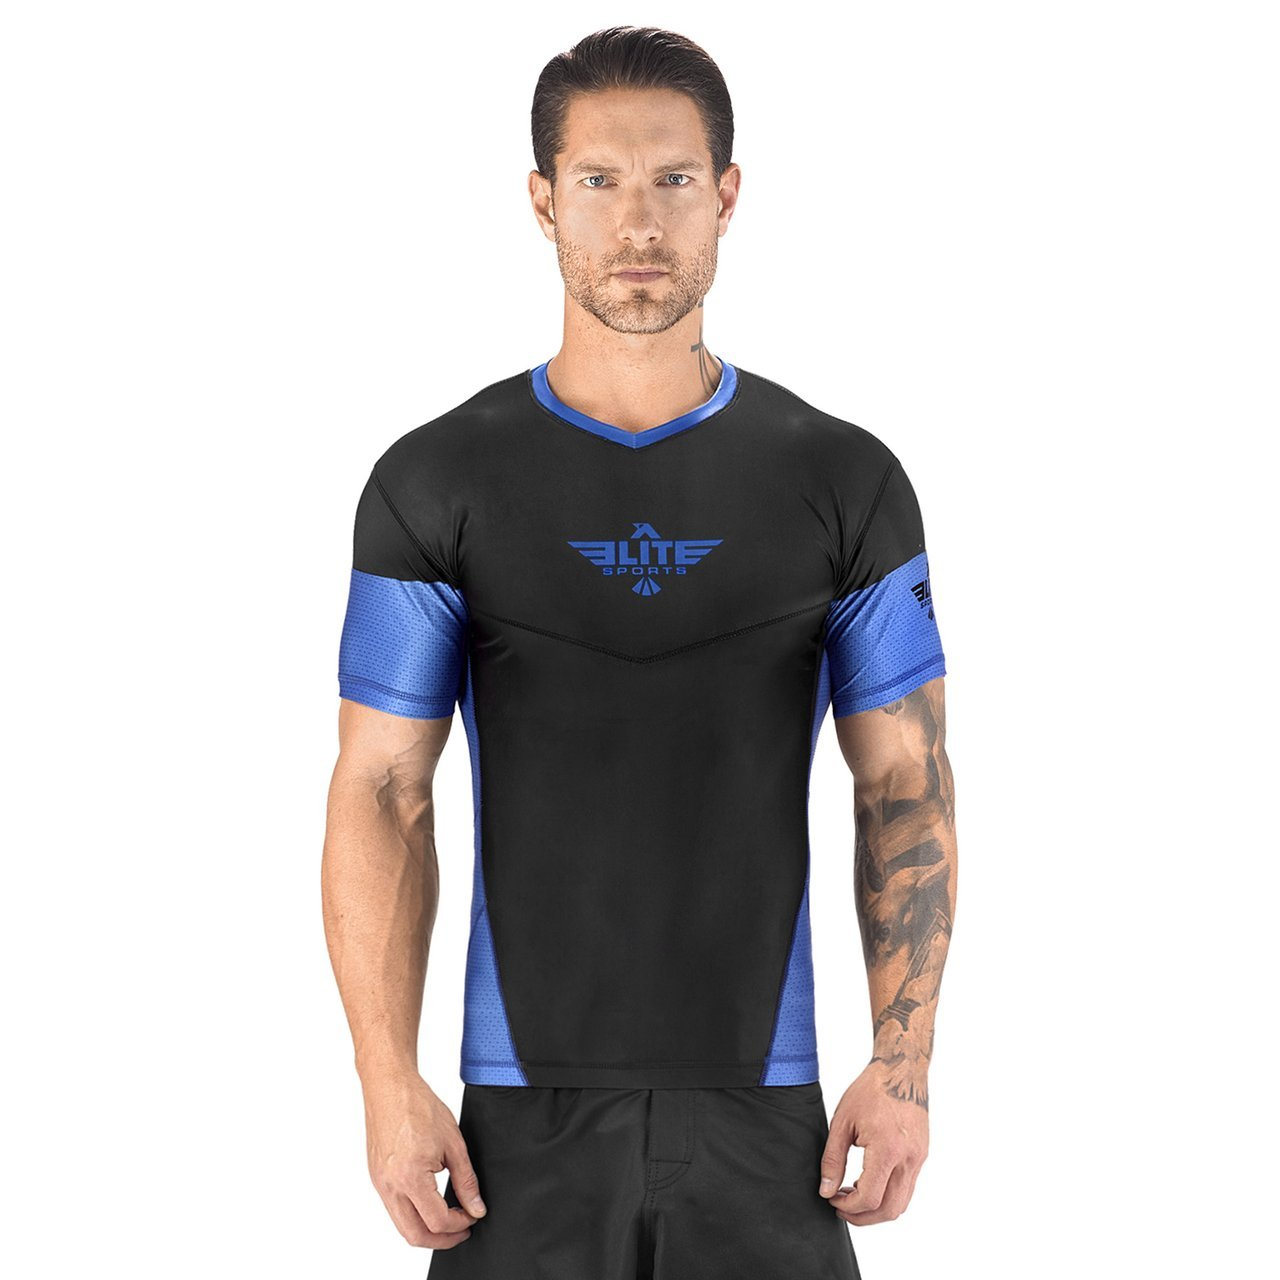 Elite Sports Honey Comb Sublimation Black/Blue Short Sleeve Brazilian Jiu Jitsu BJJ Rash Guard